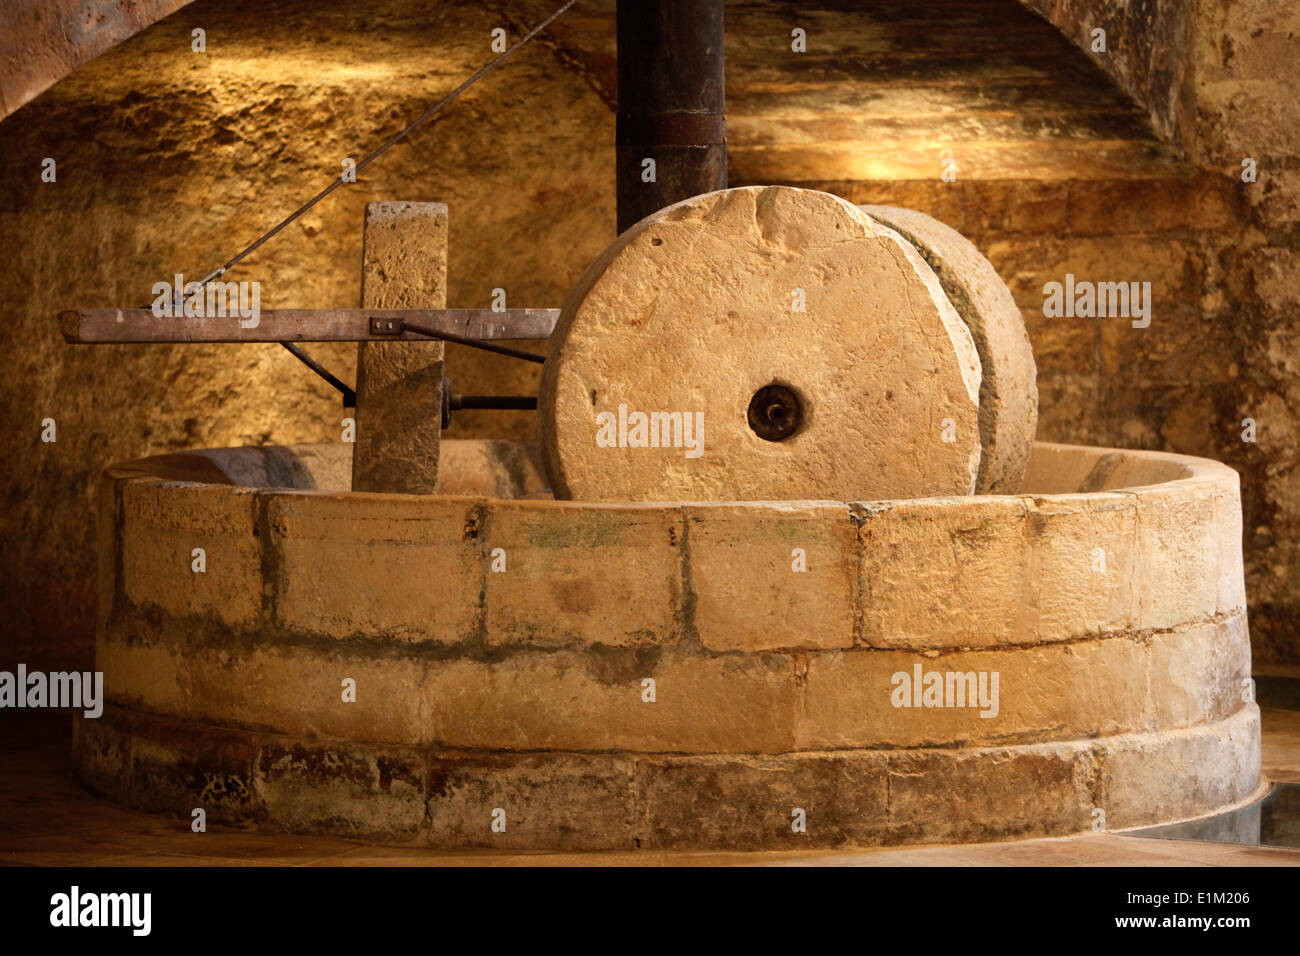 Antique olive press - Stock Image